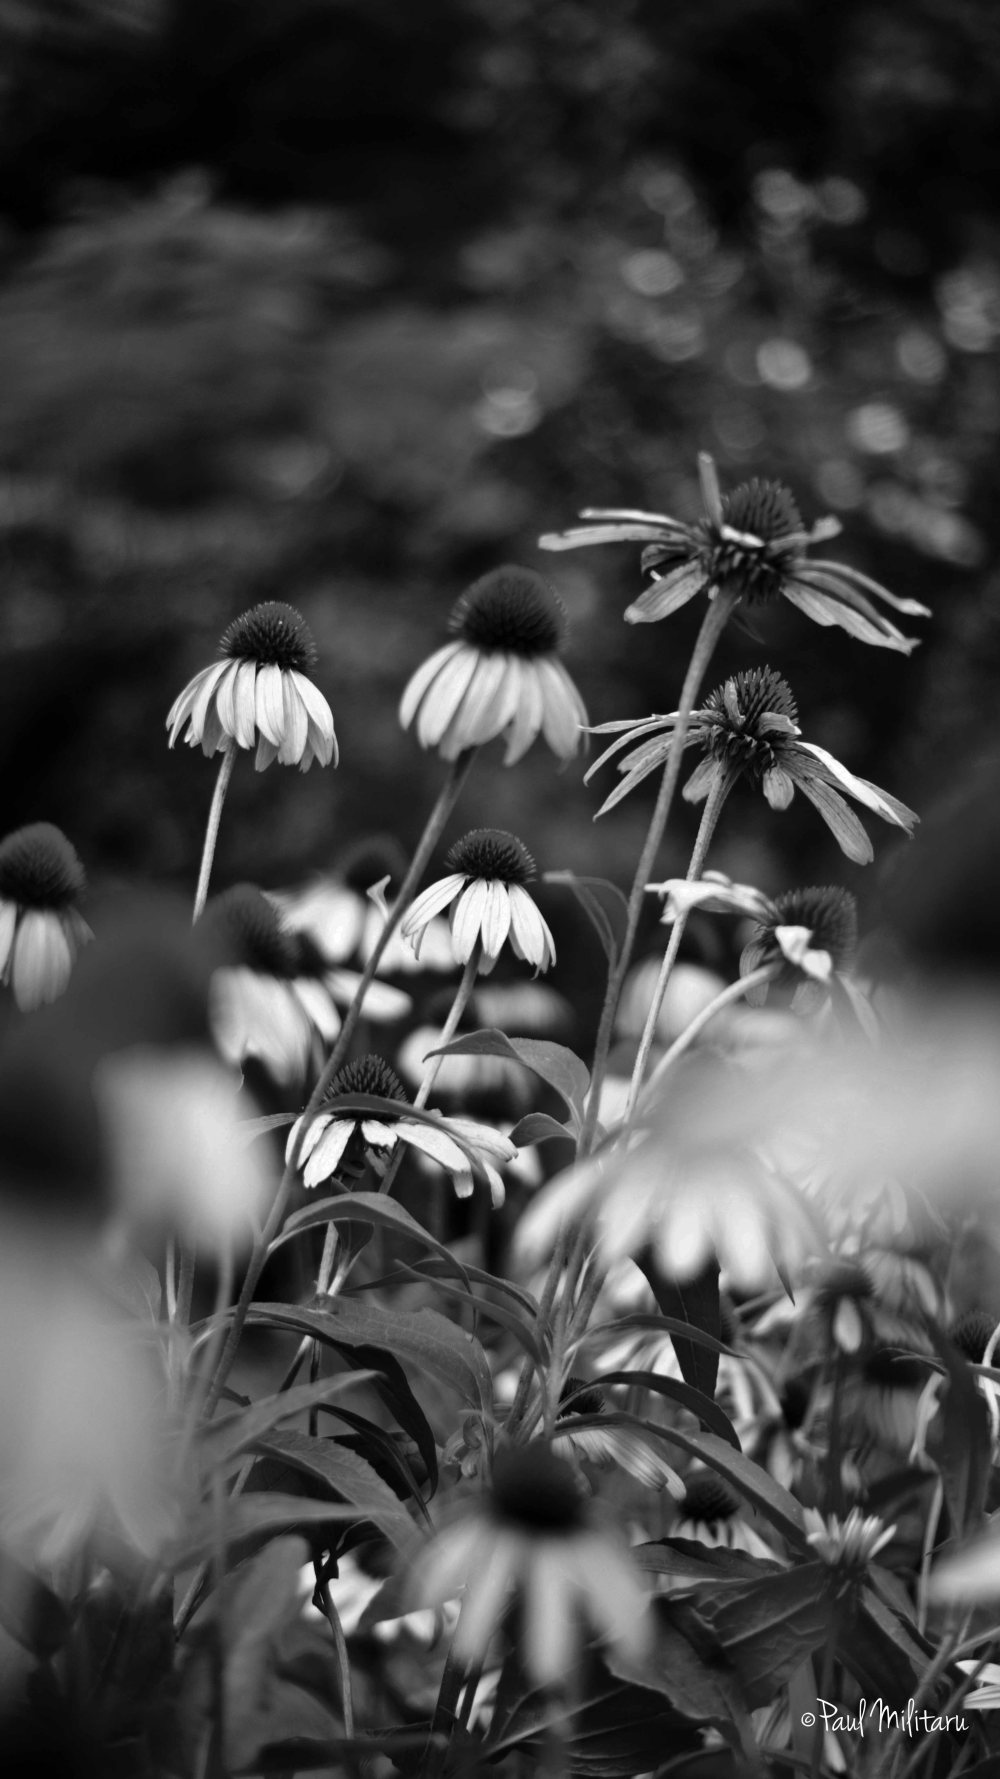 floral perspective in black and white